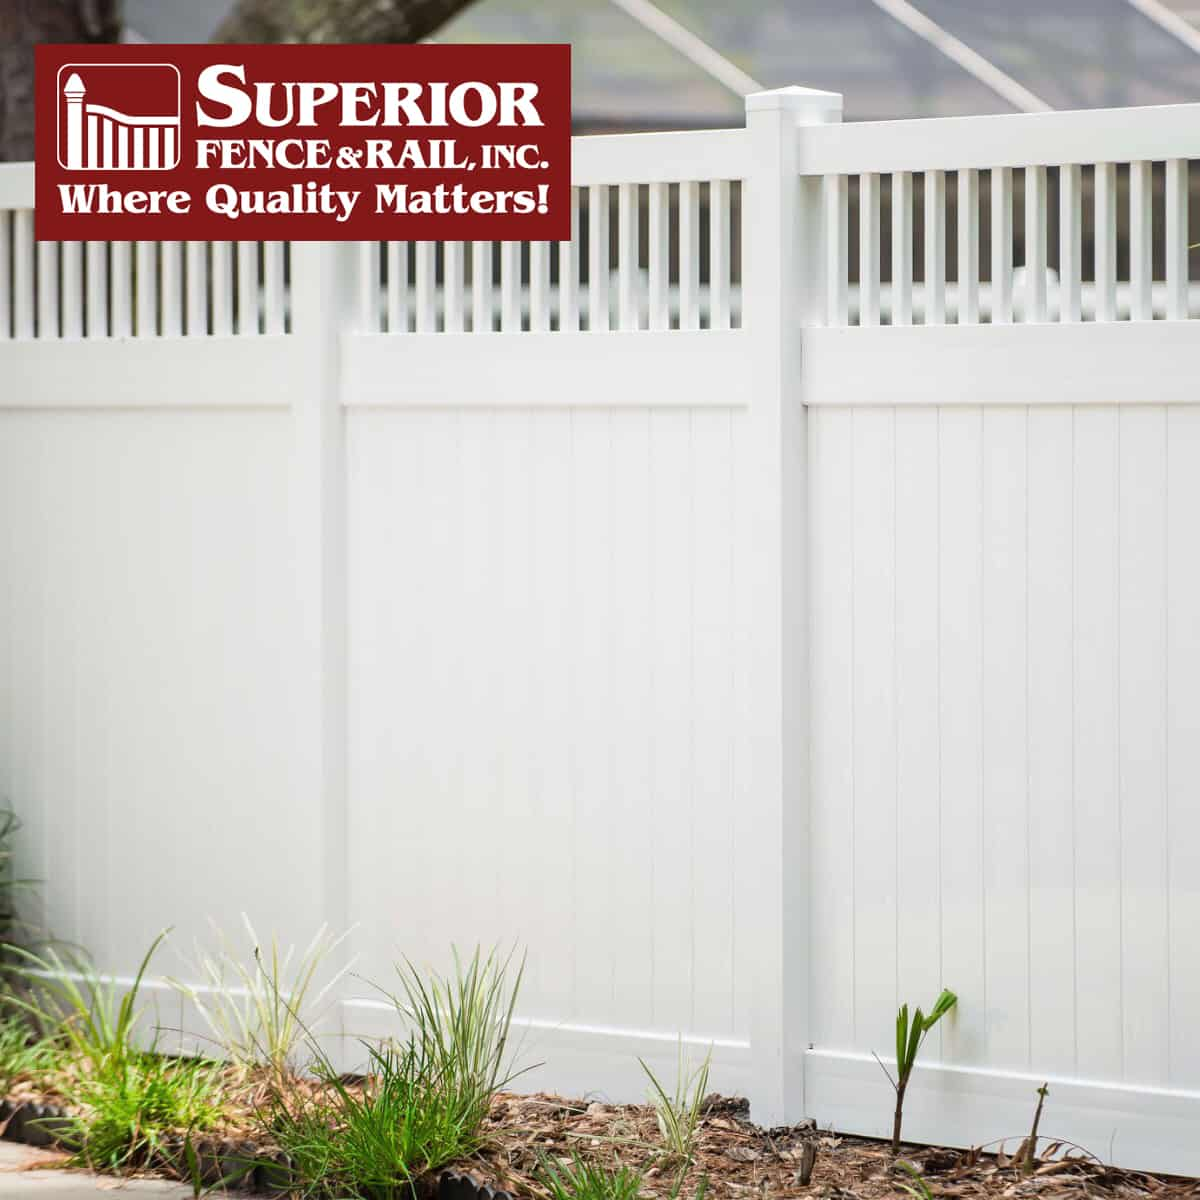 https://www.superiorfenceandrail.com/wp-content/uploads/2019/11/apex-fence-company.jpg